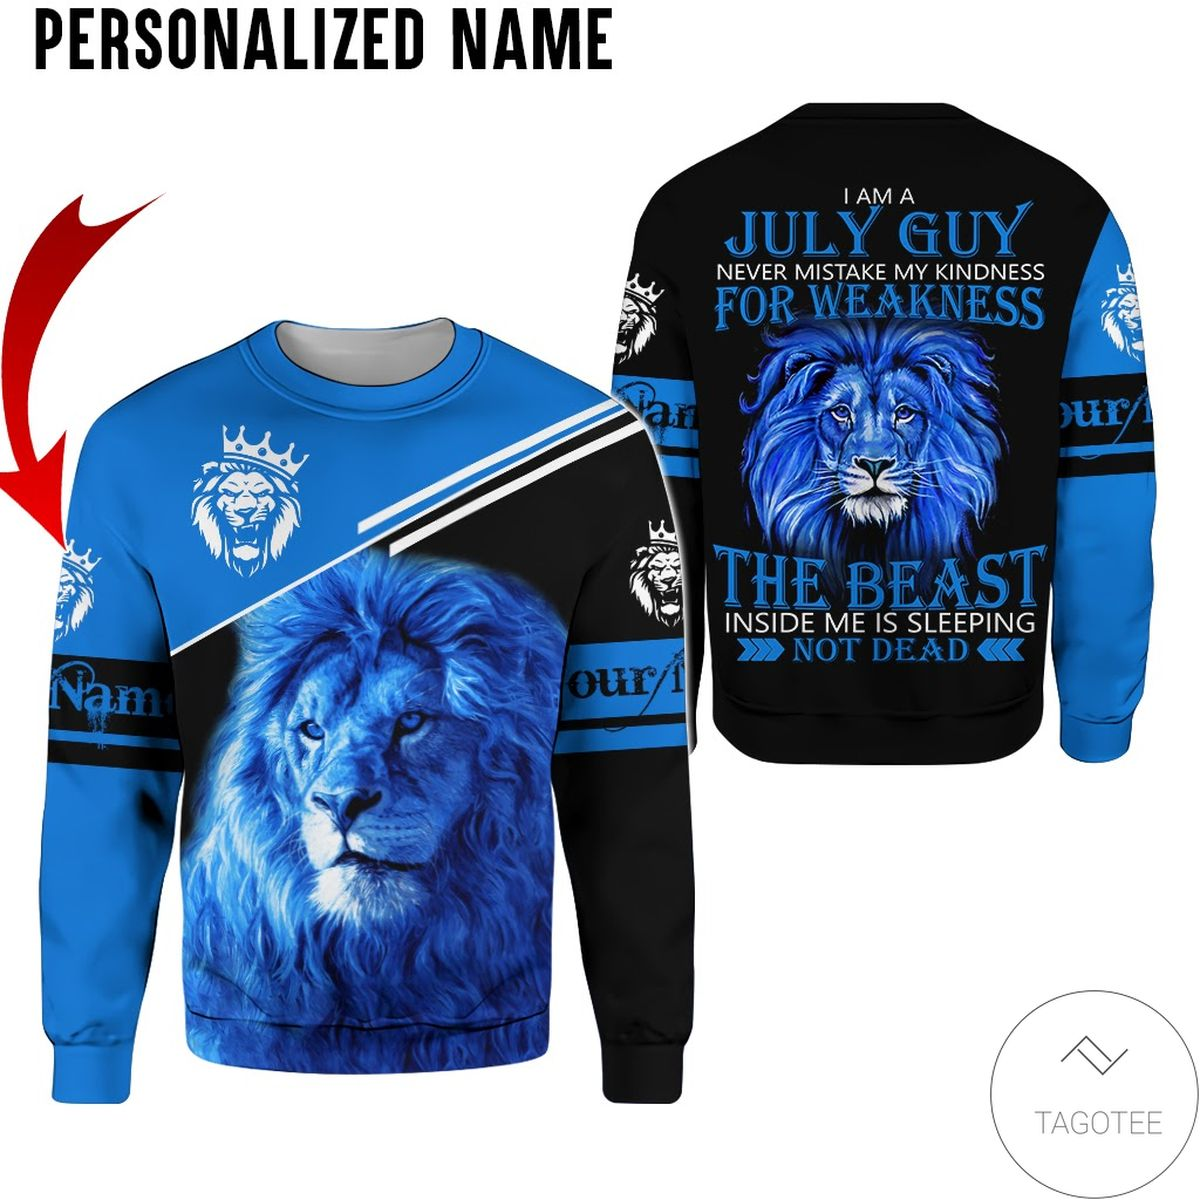 Personalized Name I'm July Guy The Beast Not Dead All Over Print Hoodie